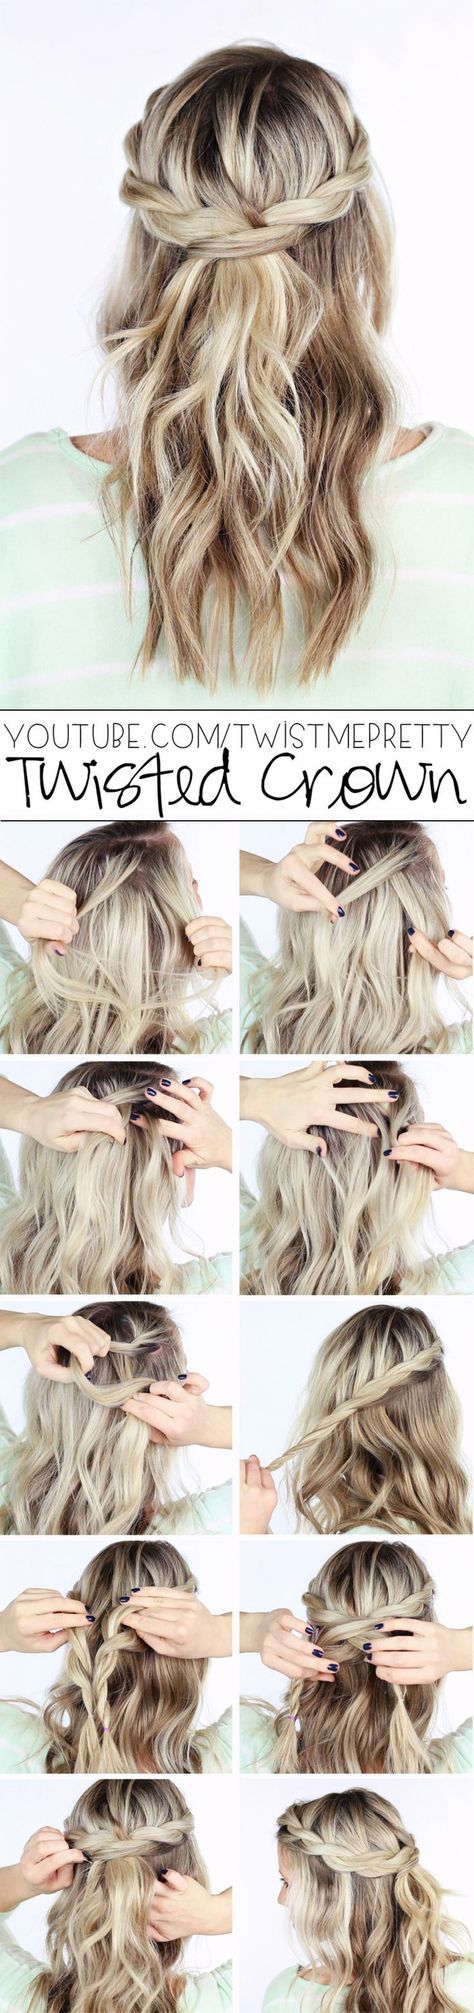 15 Easy to Do Everyday Hairstyle Ideas for Short, Medium & Long ...